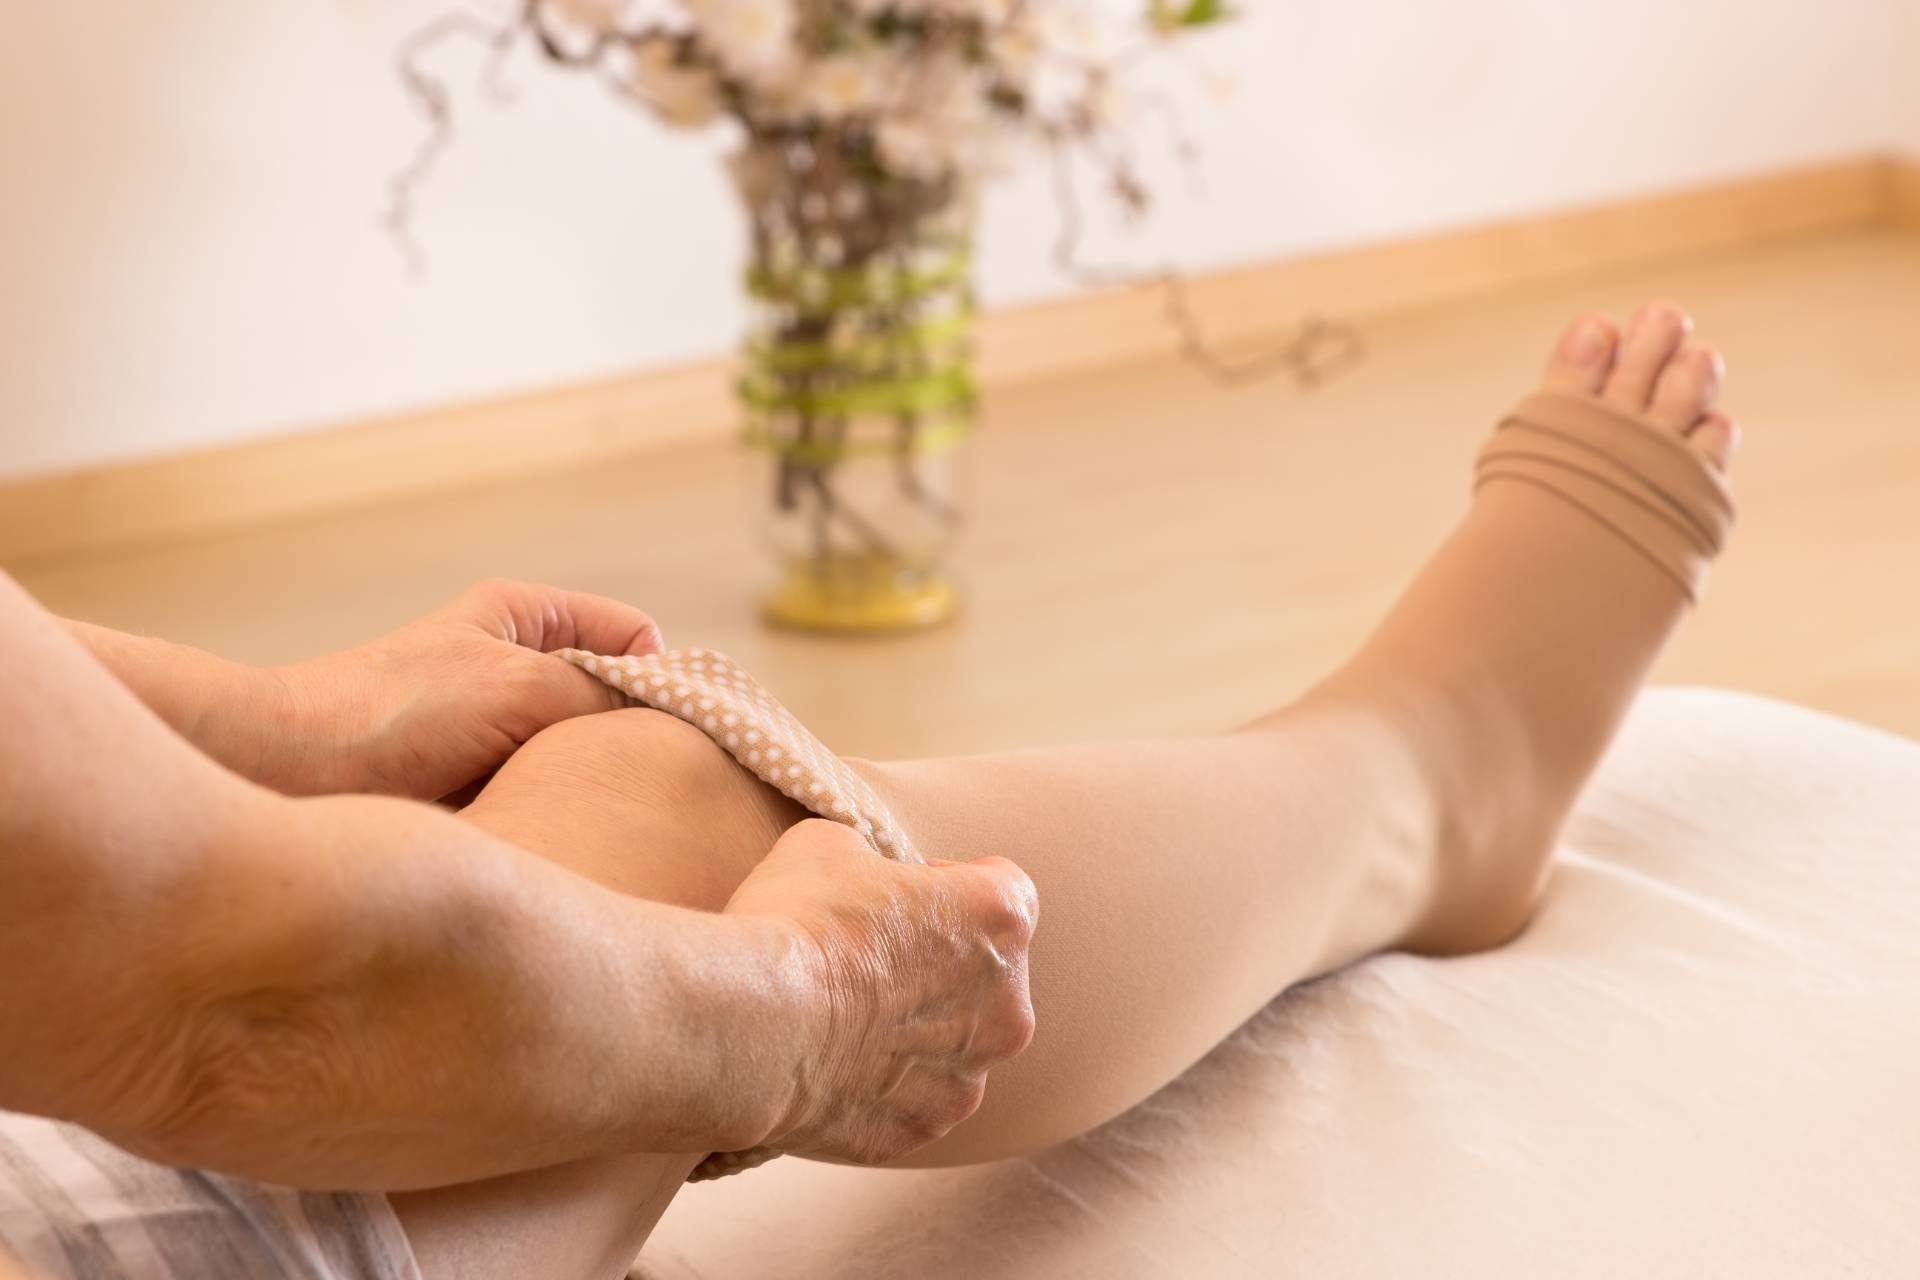 Image of woman putting on compression stockings